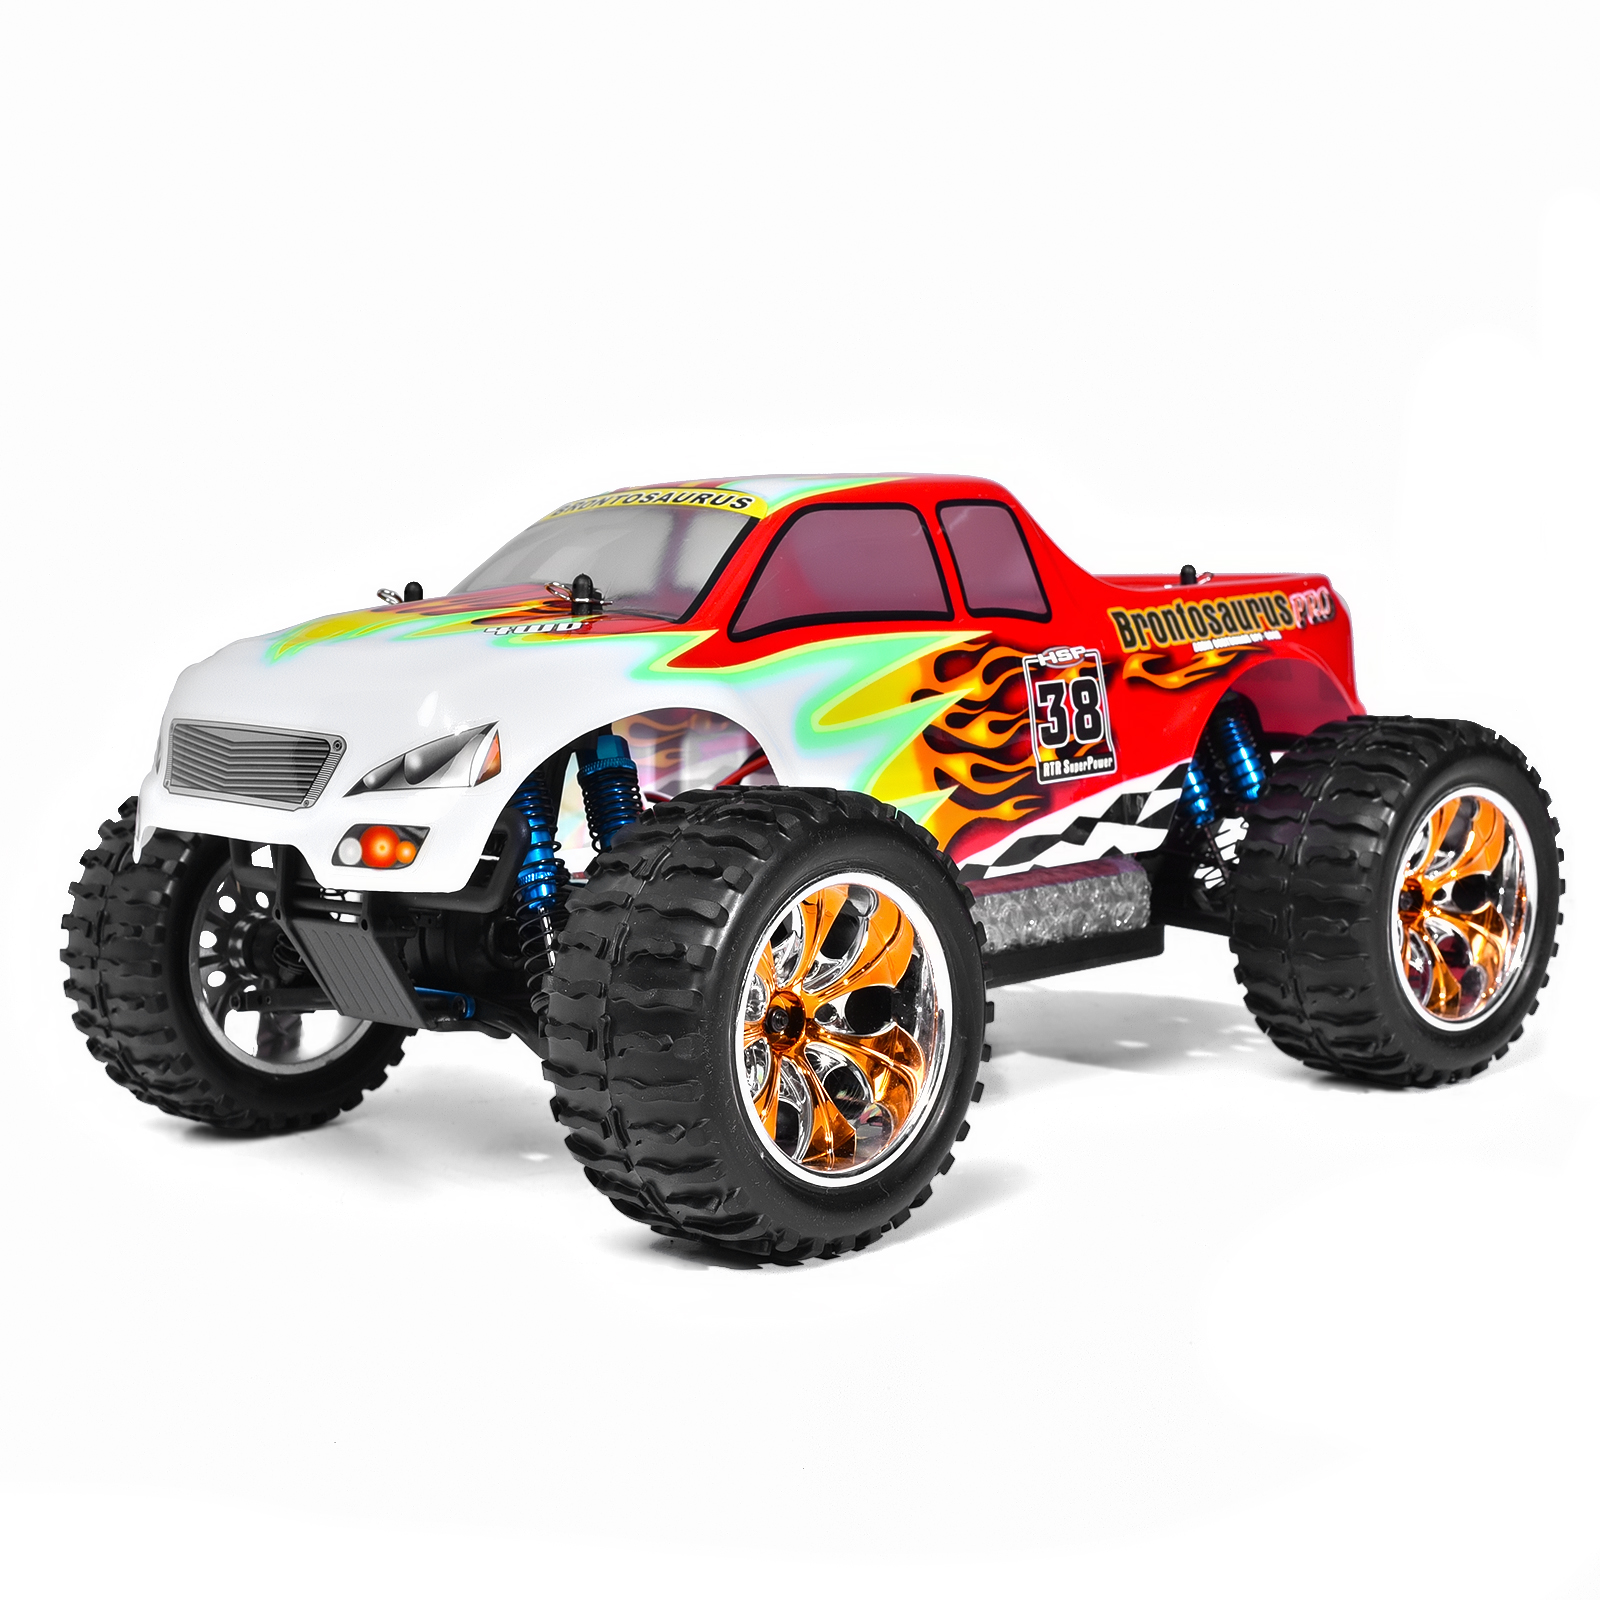 HSP Rc Car 1/10 Scale Model Off Road Monster Truck Remote Control Car 94111PRO Brushless With LIPO Battery 4wd Electric Car 02023 clutch bell double gears 19t 24t for rc hsp 1 10th 4wd on road off road car truck silver